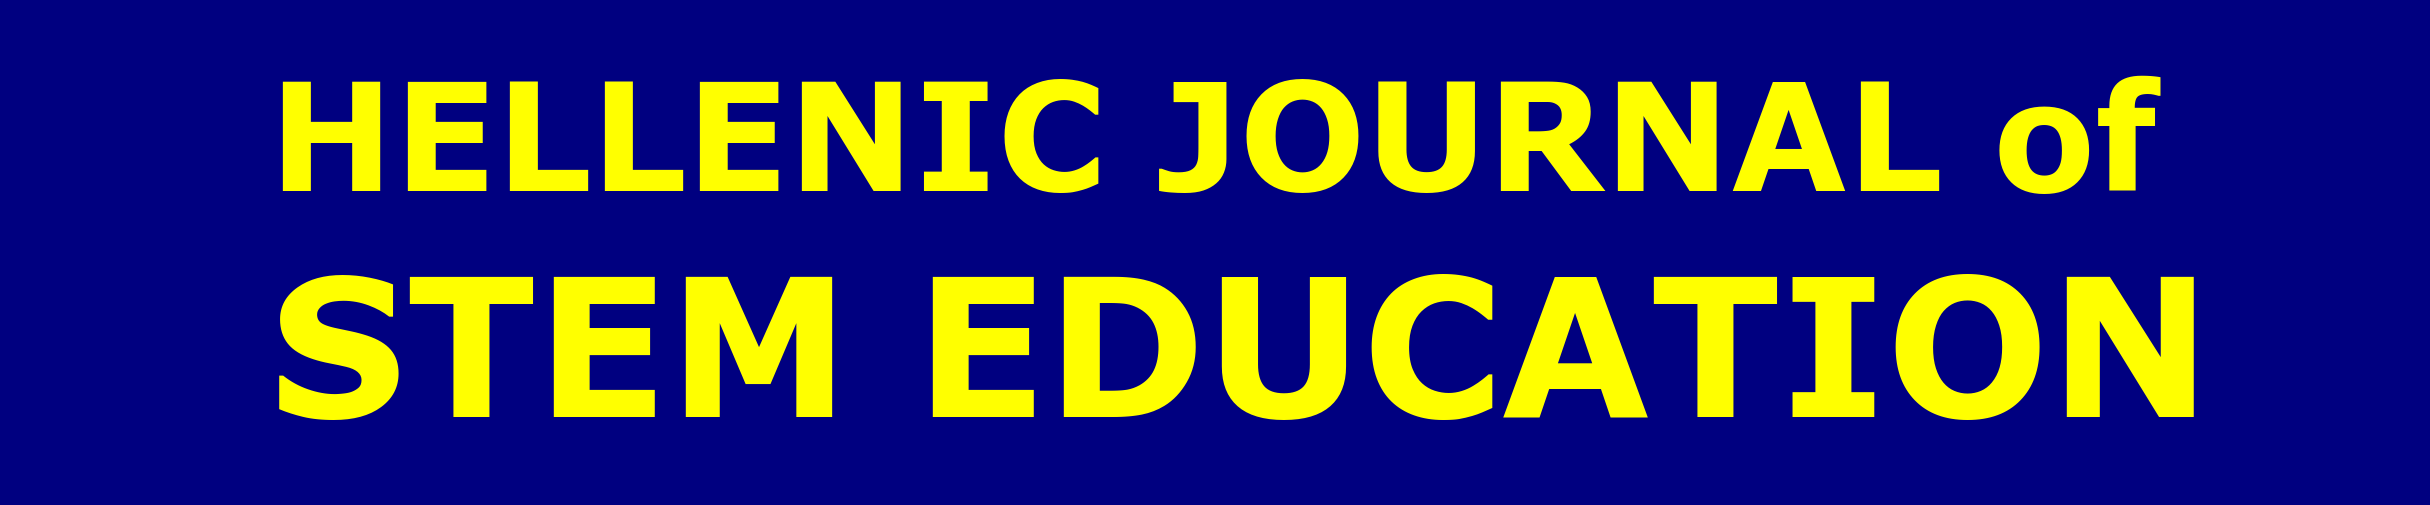 Hellenic Journal of STEM Education